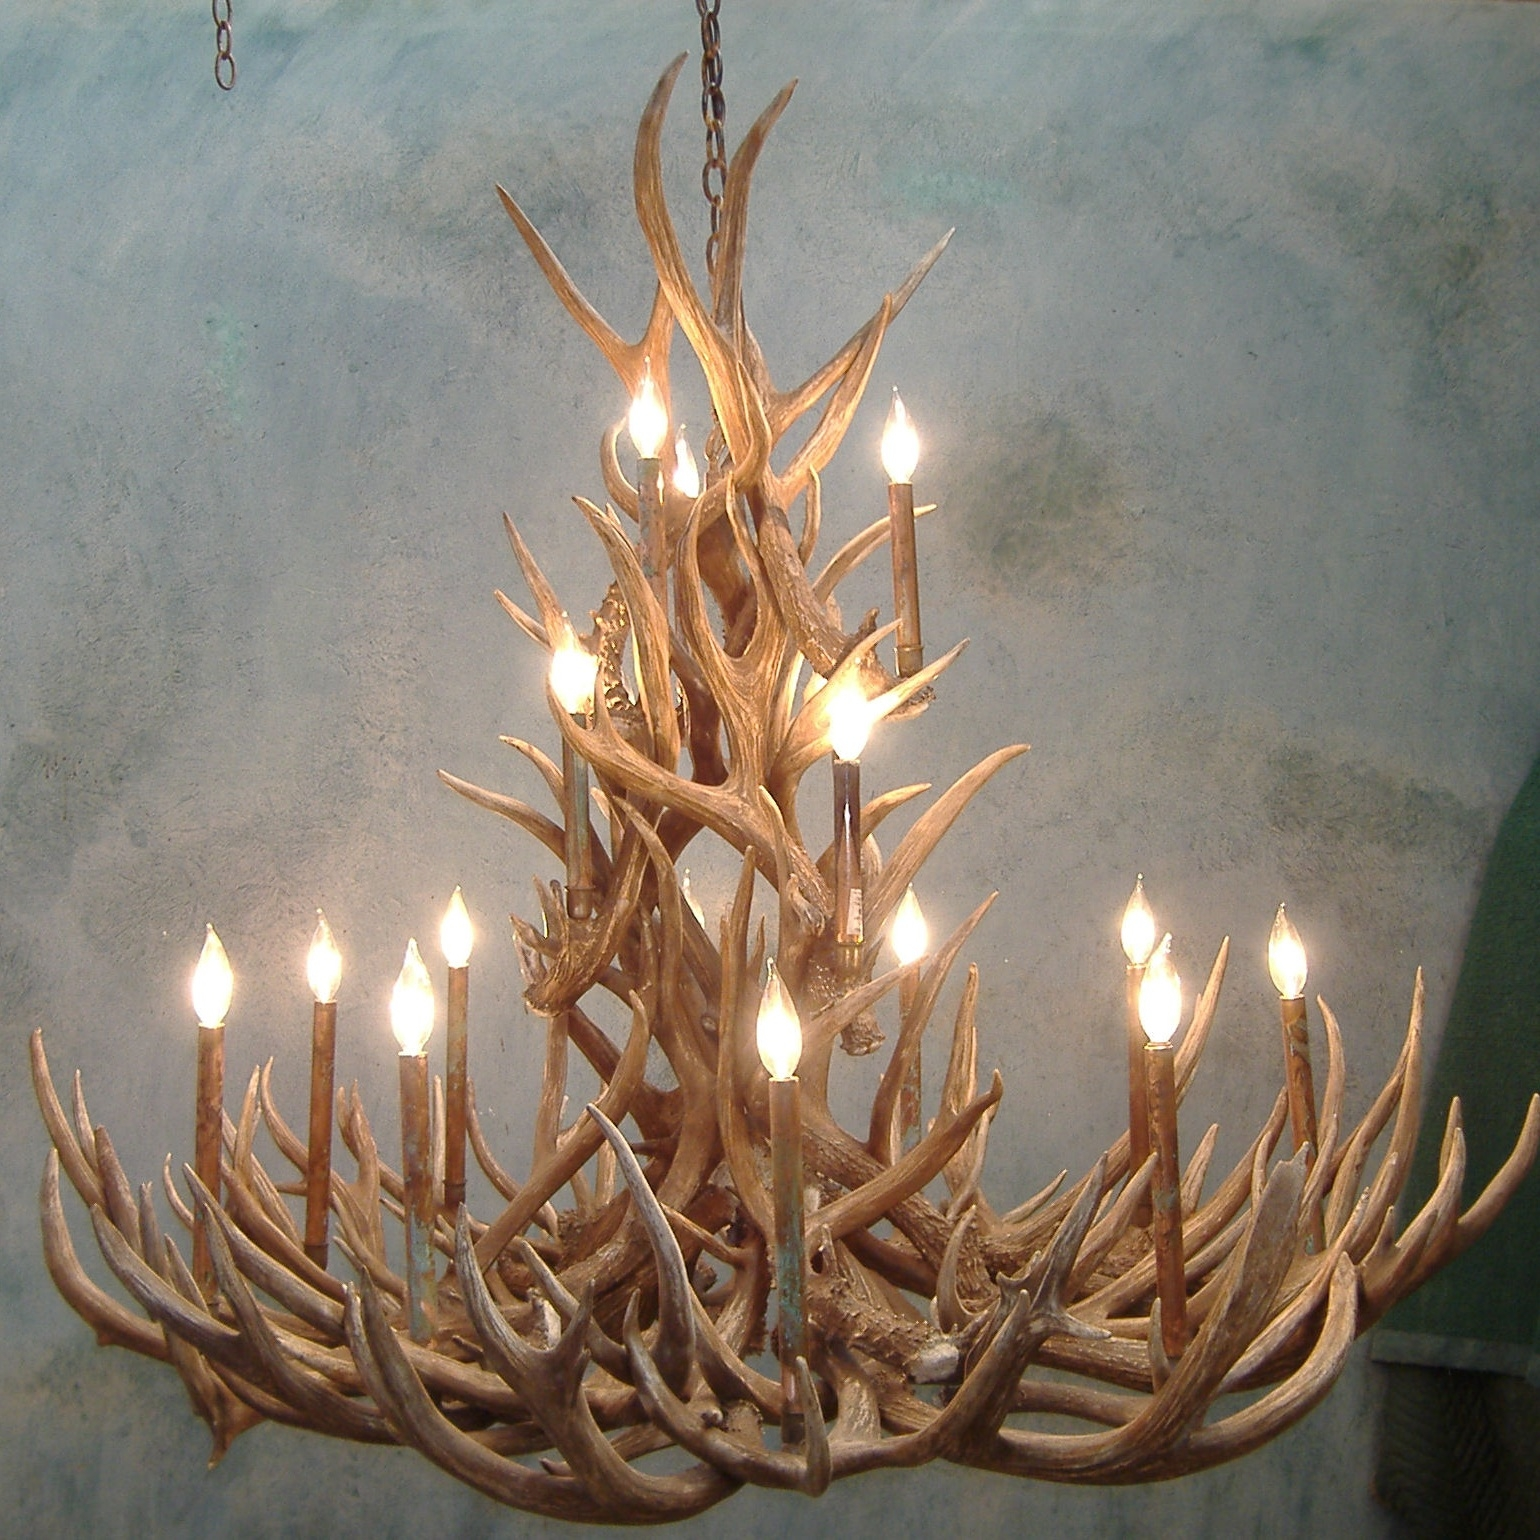 Deer Horn Chandelier Lightupmyparty Throughout Stag Horn Chandelier (View 8 of 15)